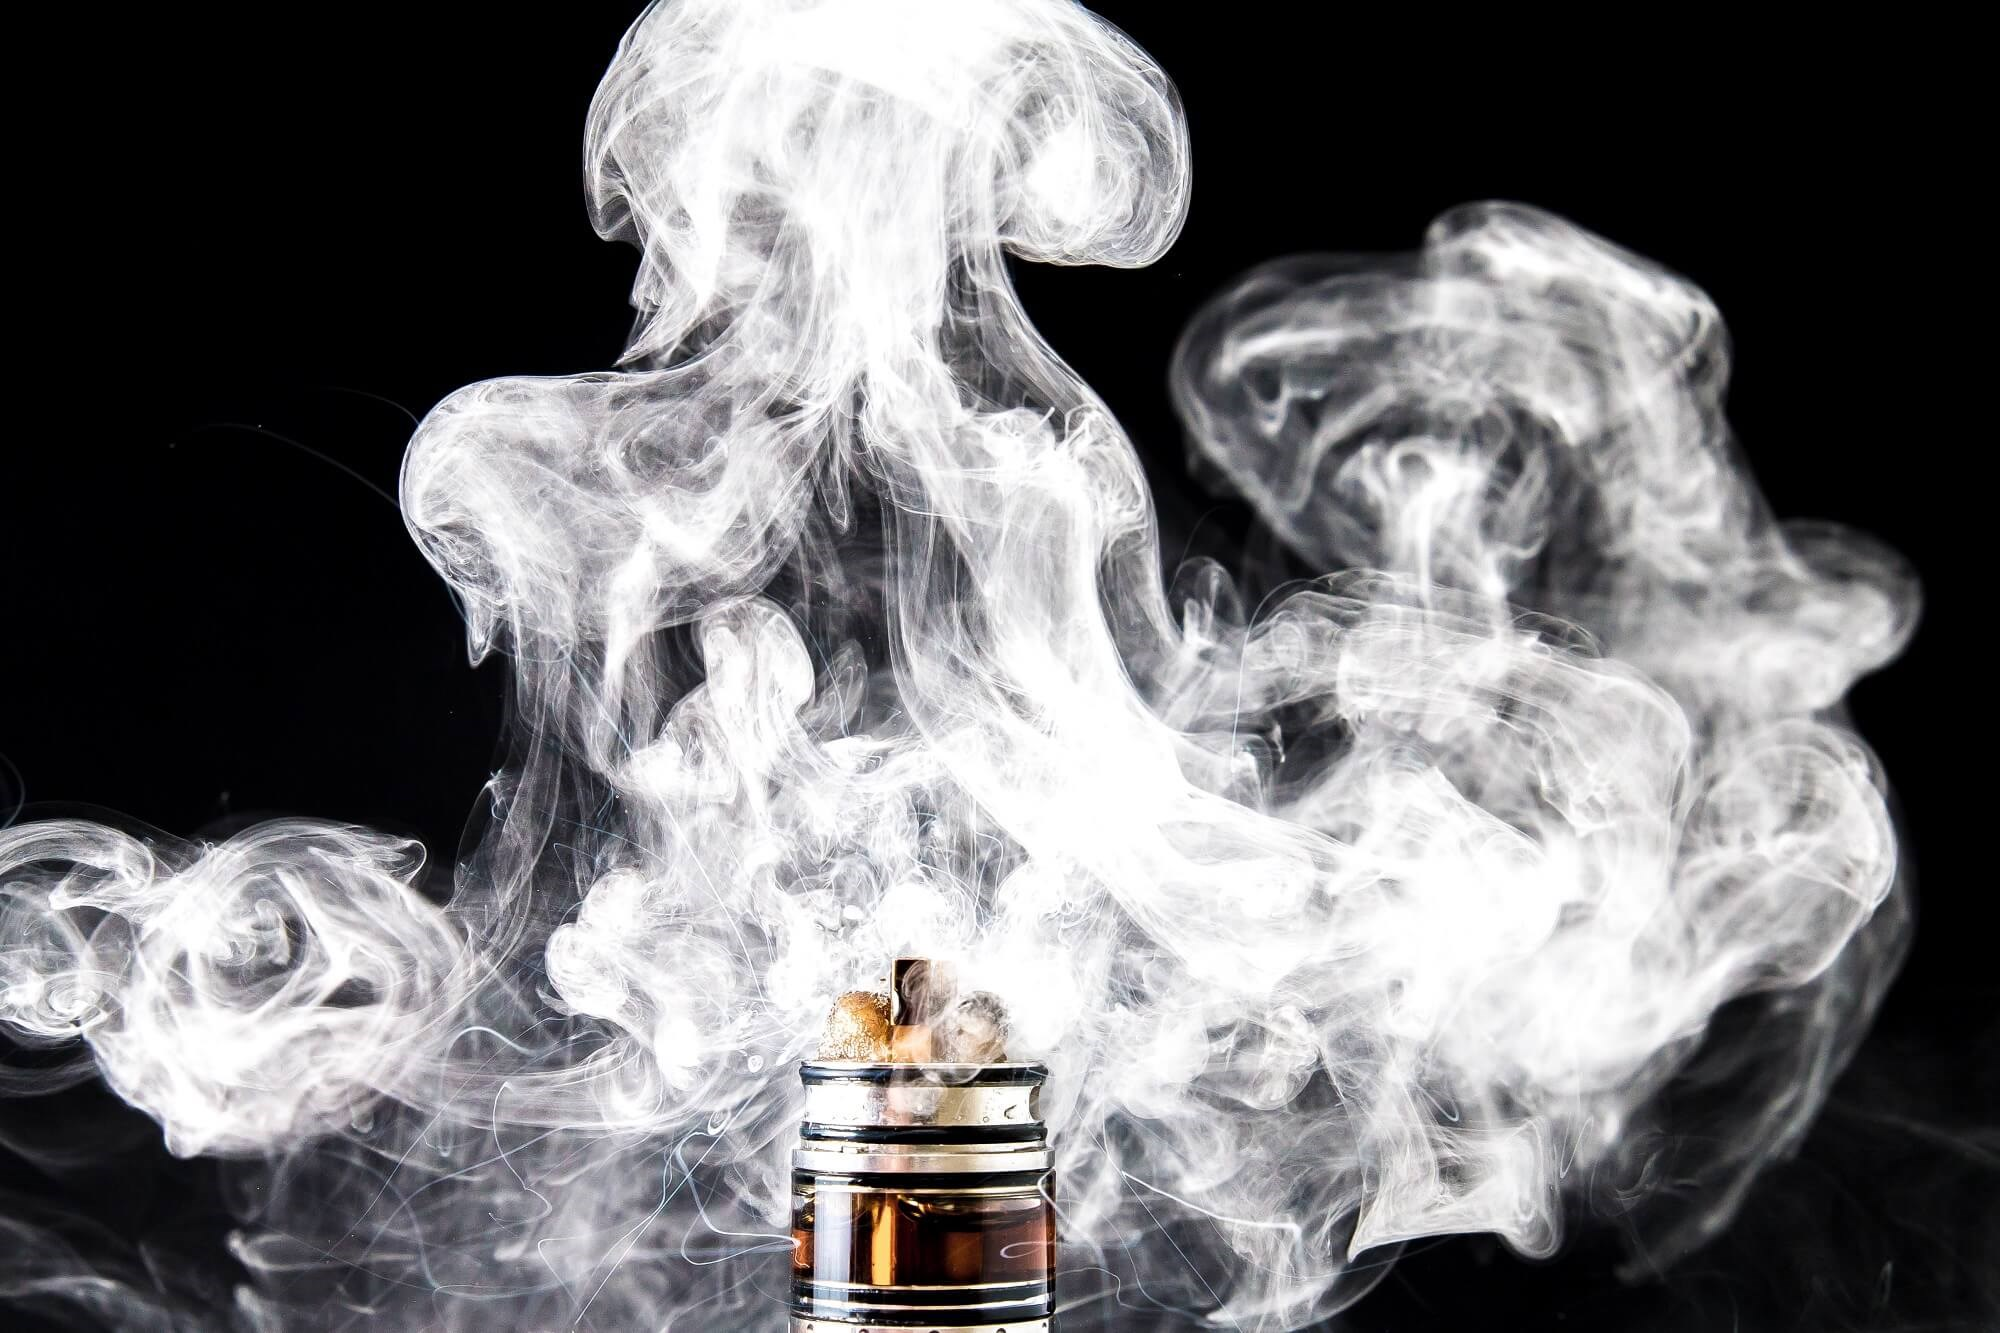 FDA to Ban Most Flavored Electronic Cigarettes